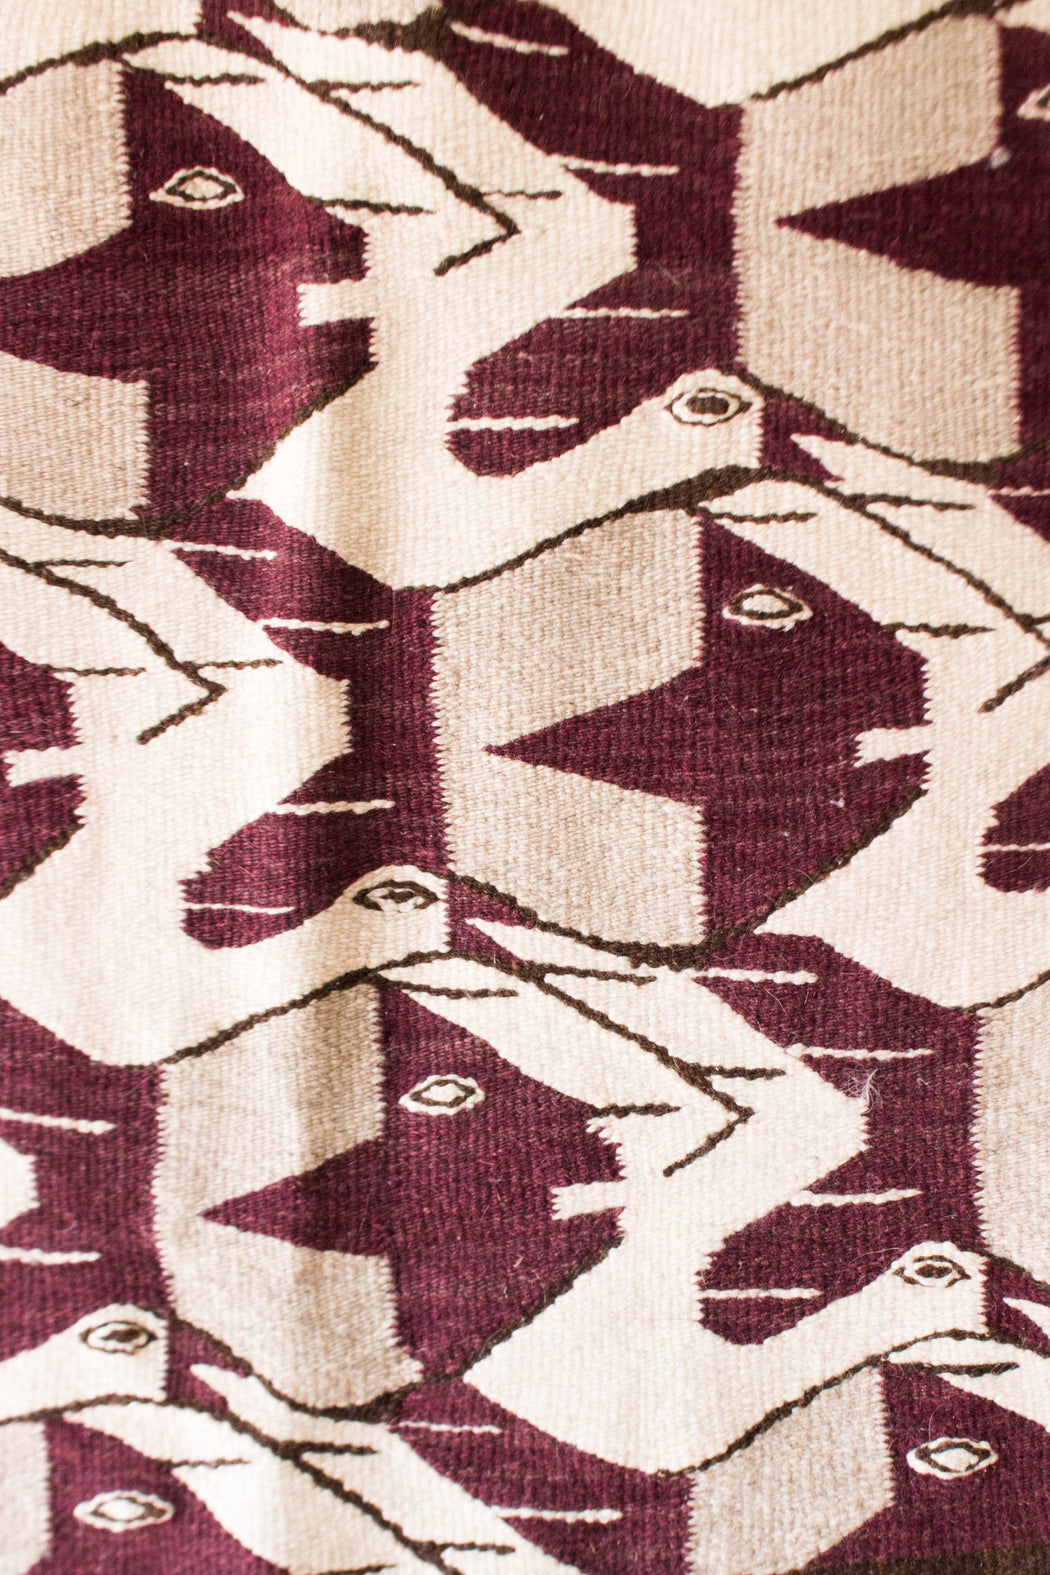 Cream + Purple Bird Pattern Textile